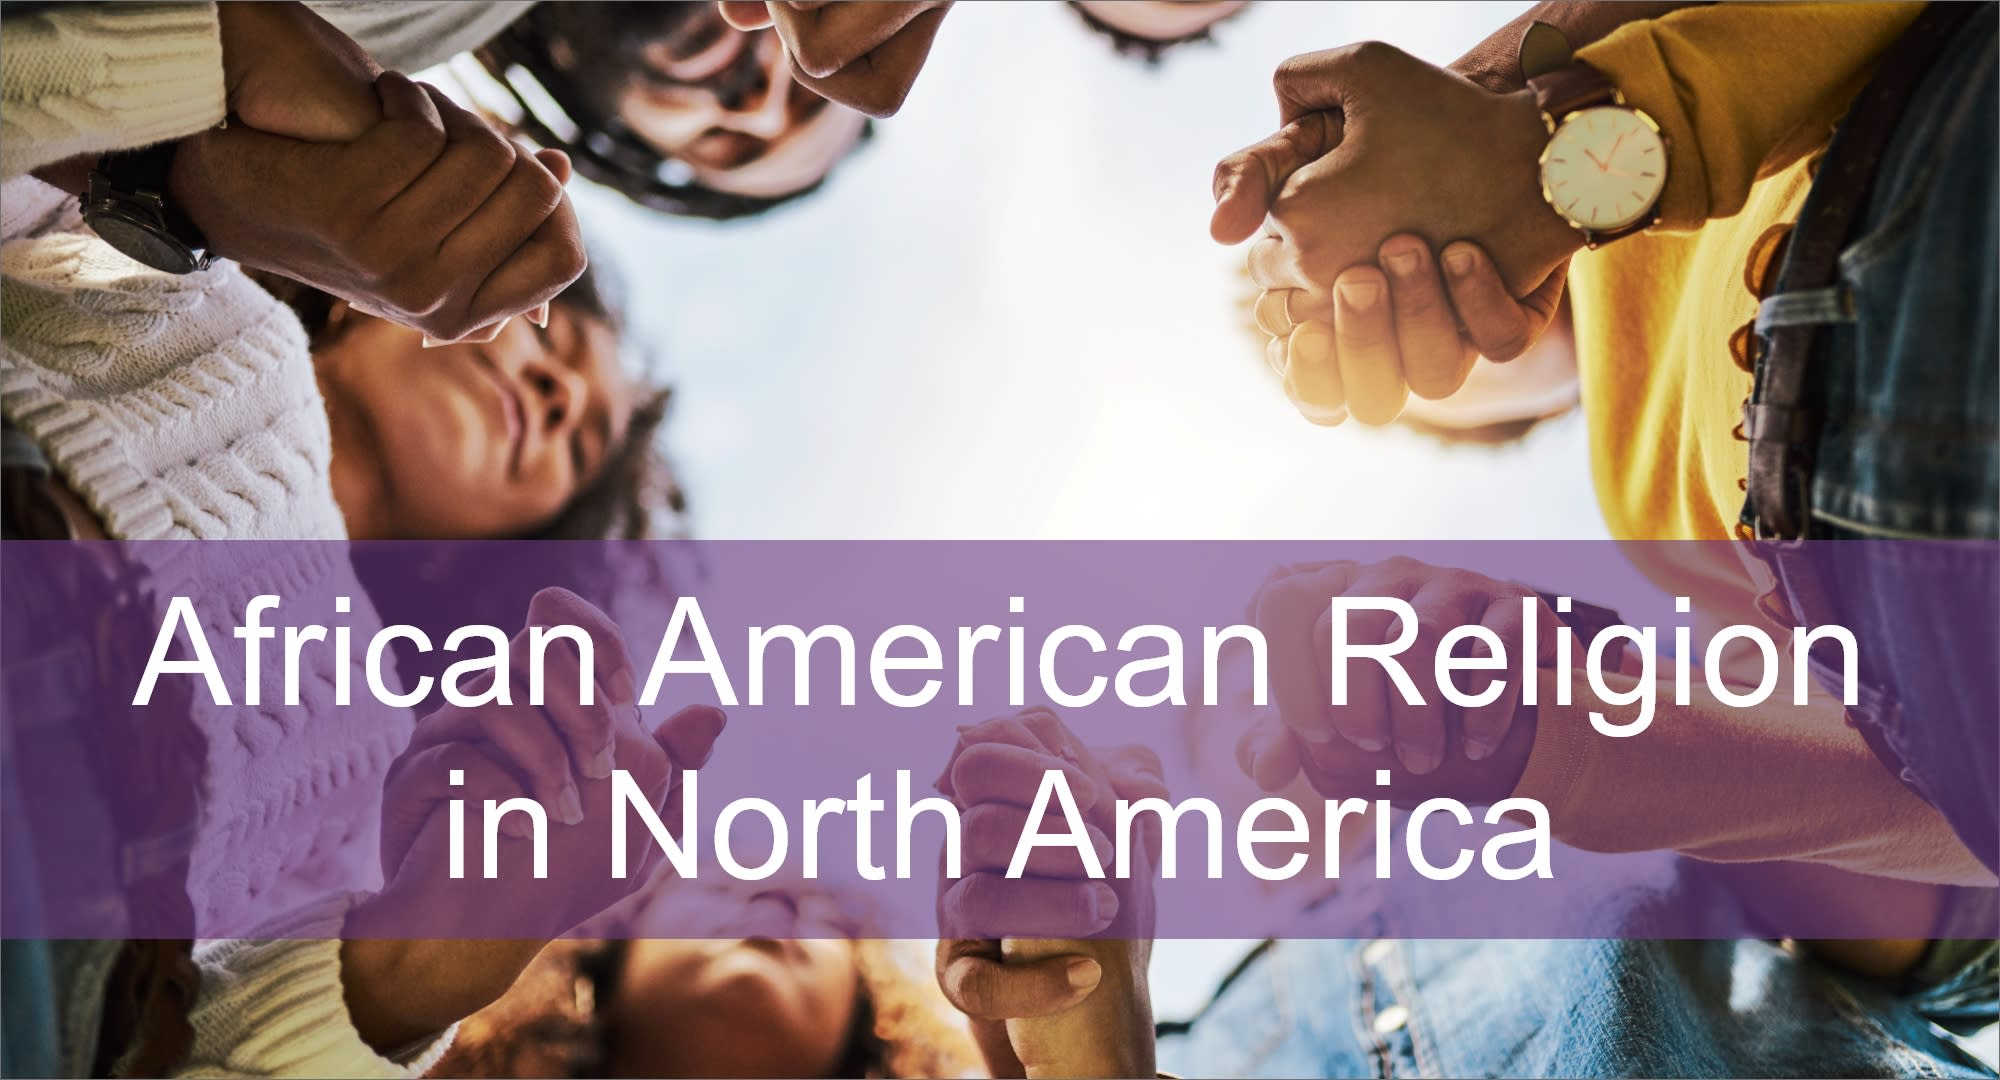 Click here to view content on African American Religion in North America